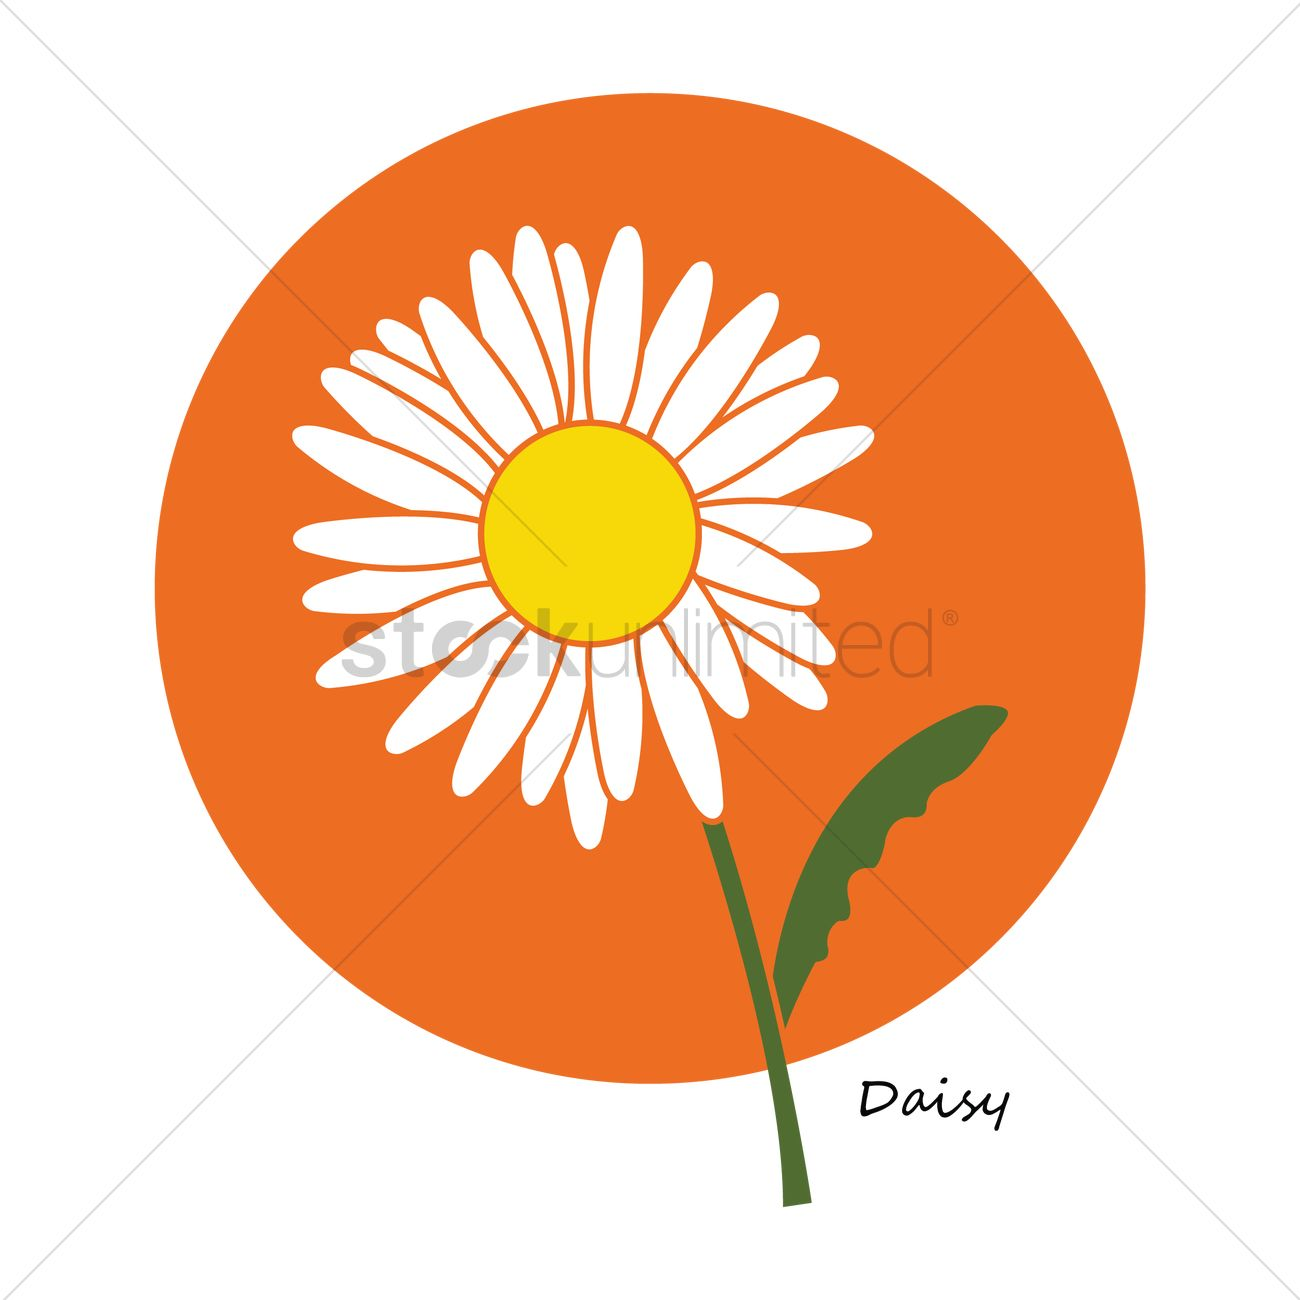 Free Daisy Flower Vector Image 1332968 Stockunlimited